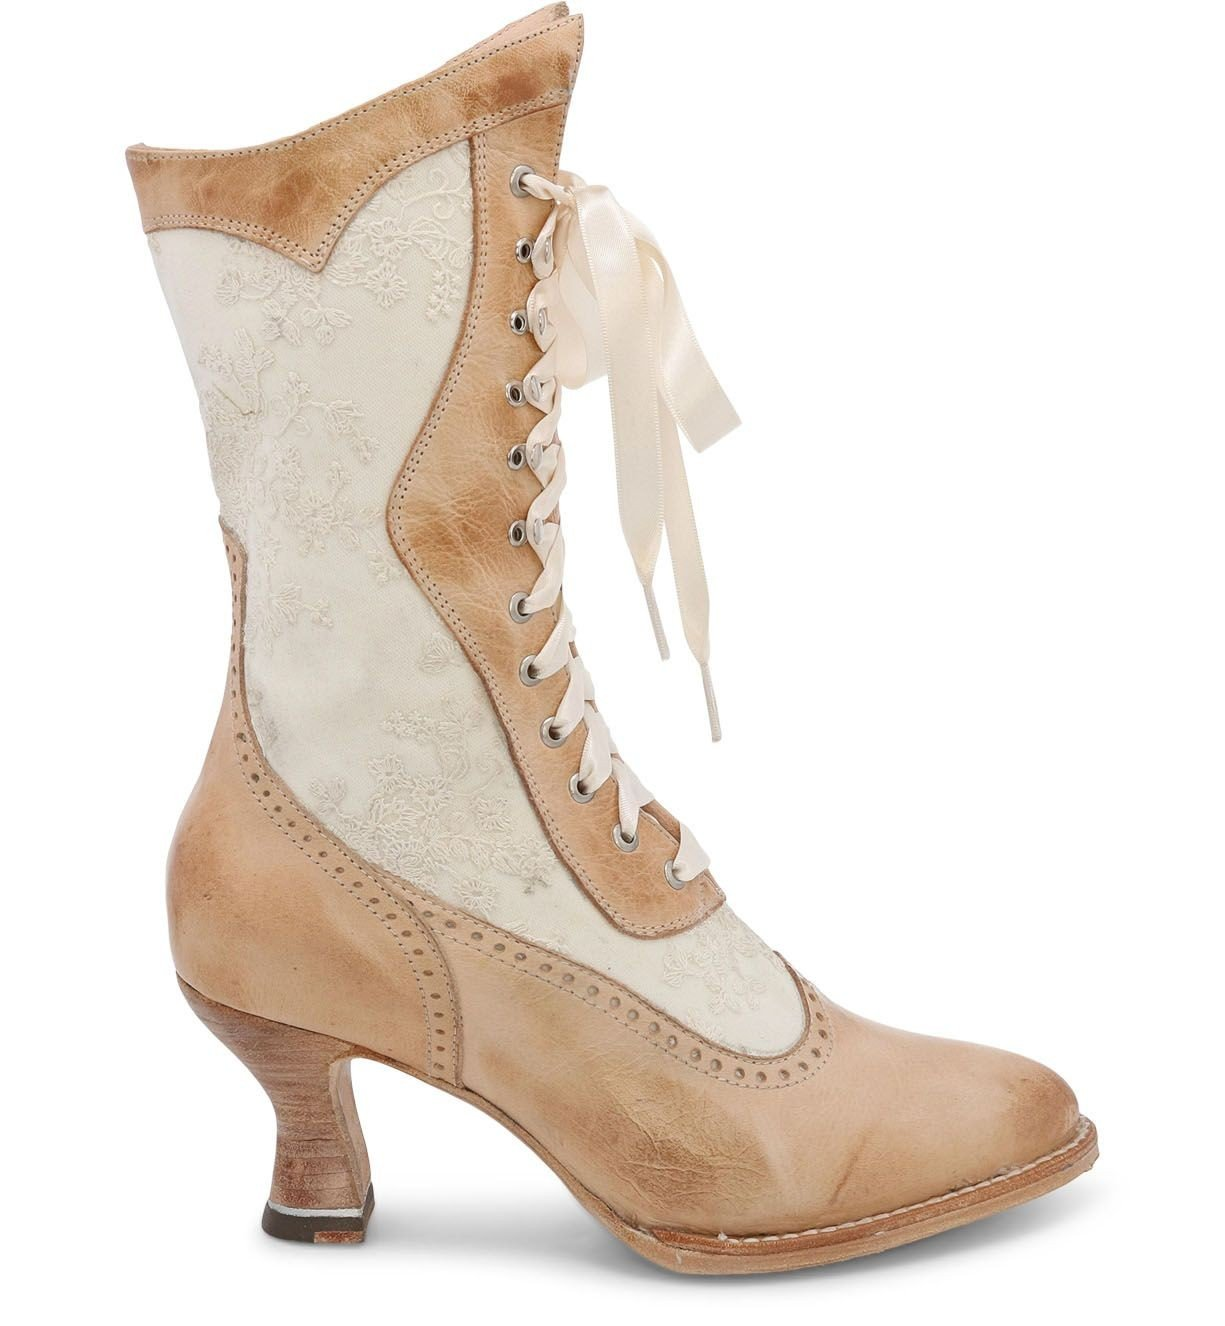 Edwardian Shoes & Boots | Titanic Shoes Abigale Victorian Inspired Leather  Lace Boots in Bone Rustic $285.00 AT vintagedancer.com